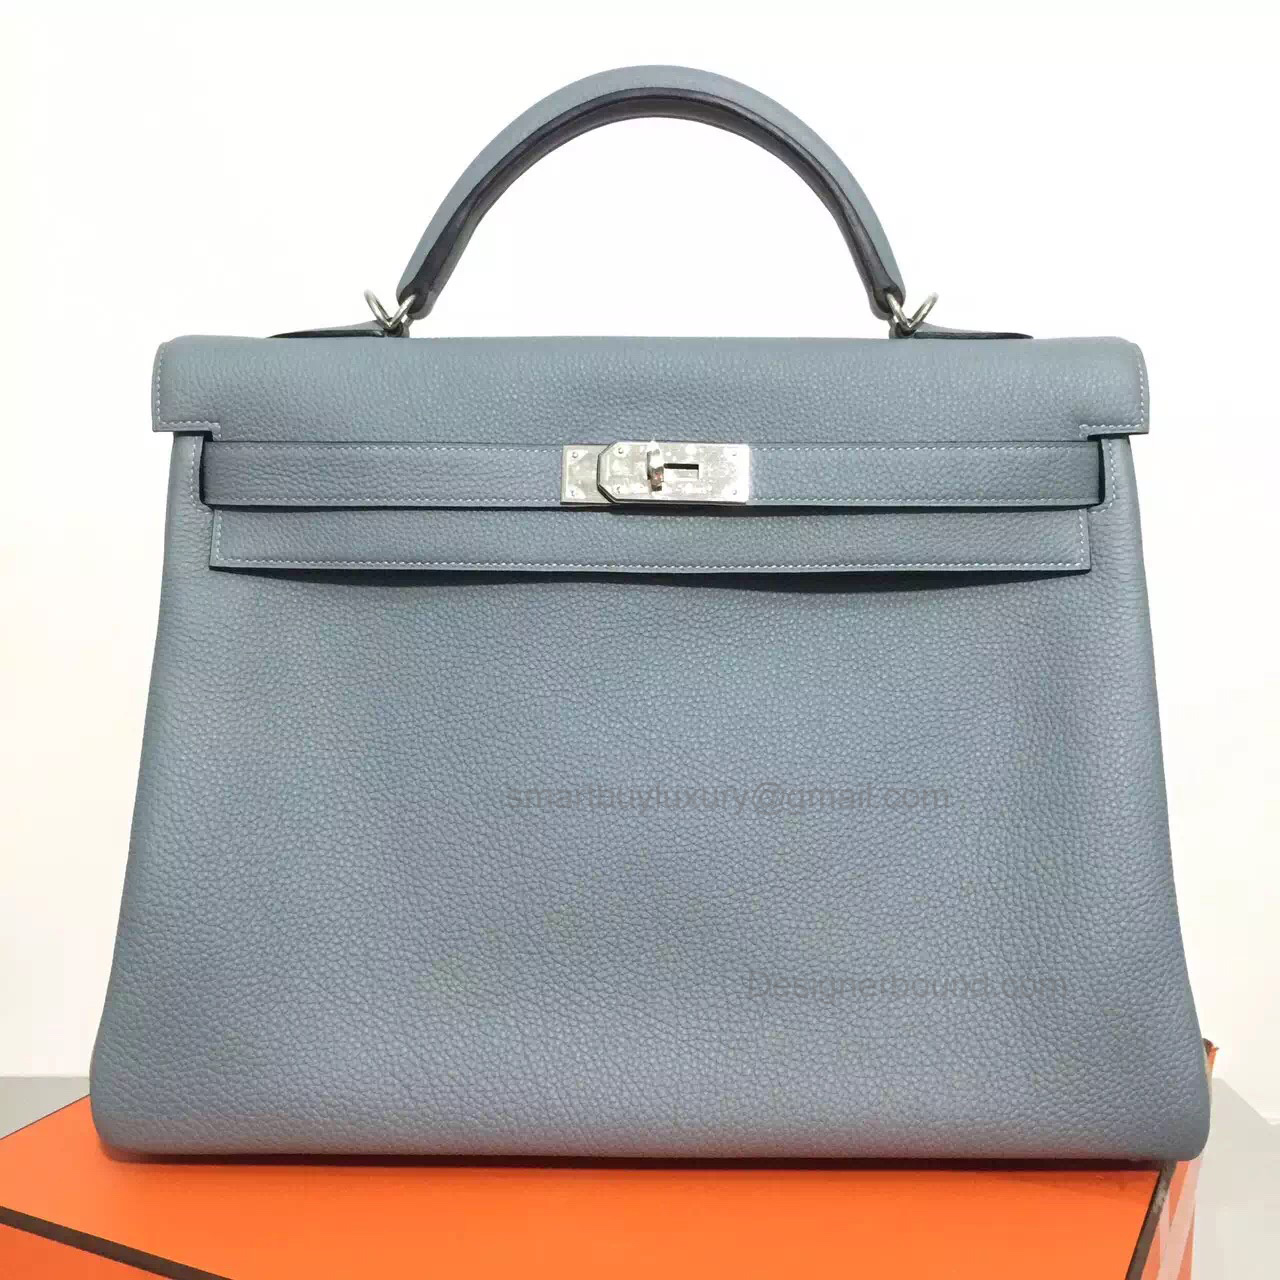 Handmade Hermes Kelly 40 Copy Bag in Bicolored j7 Blue Lin Togo Calfskin PHW